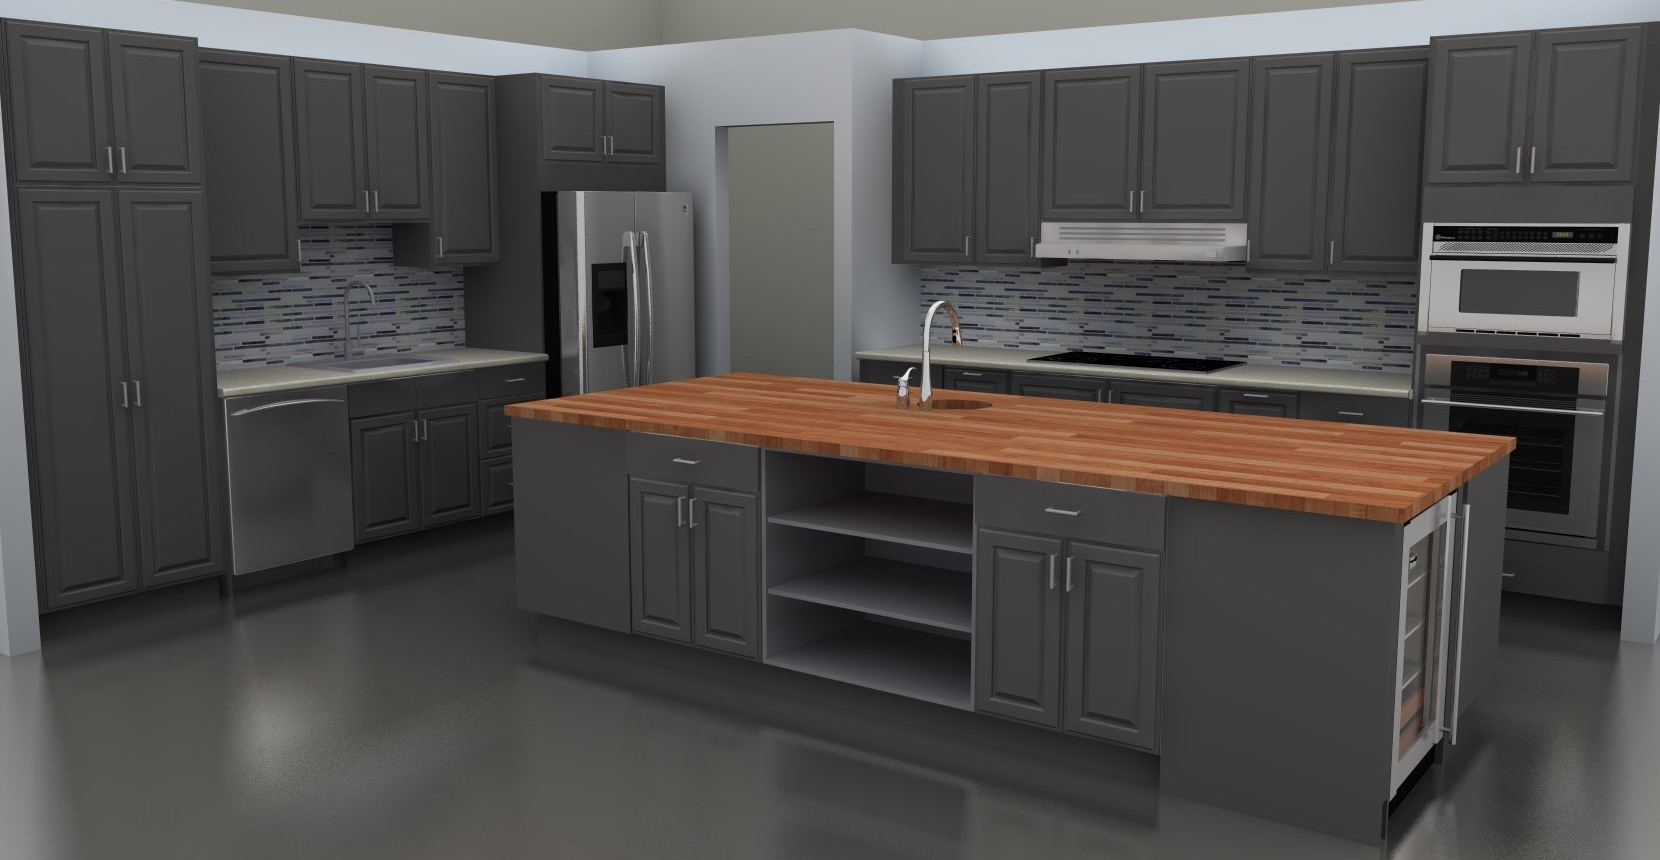 Stylish lidingo gray doors for a new ikea kitchen for Kitchen counter cabinet design